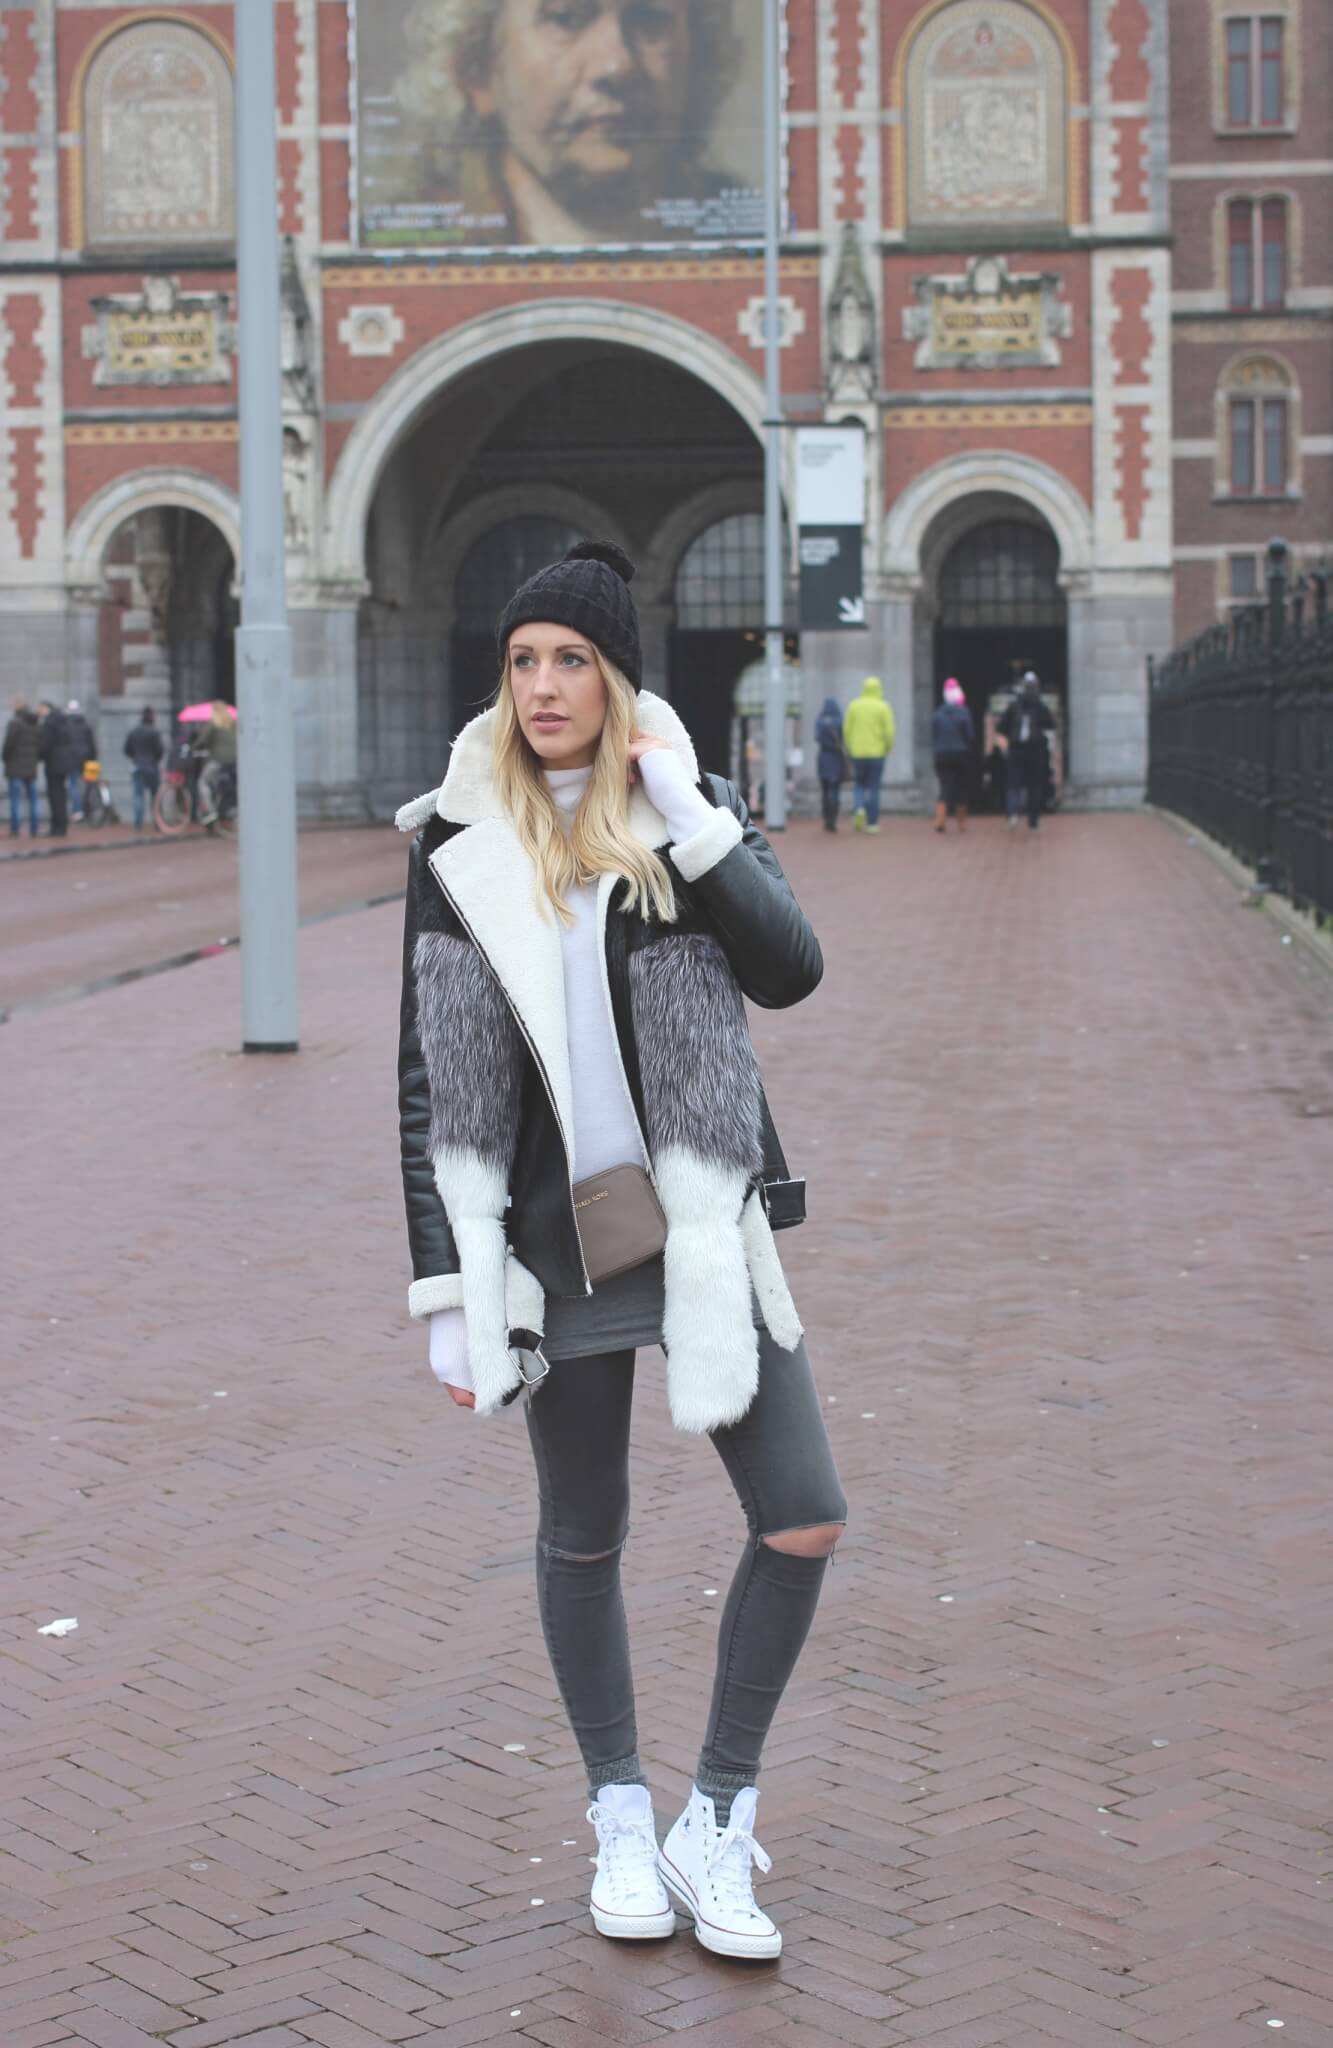 Styling a shearling coat in Amsterdam